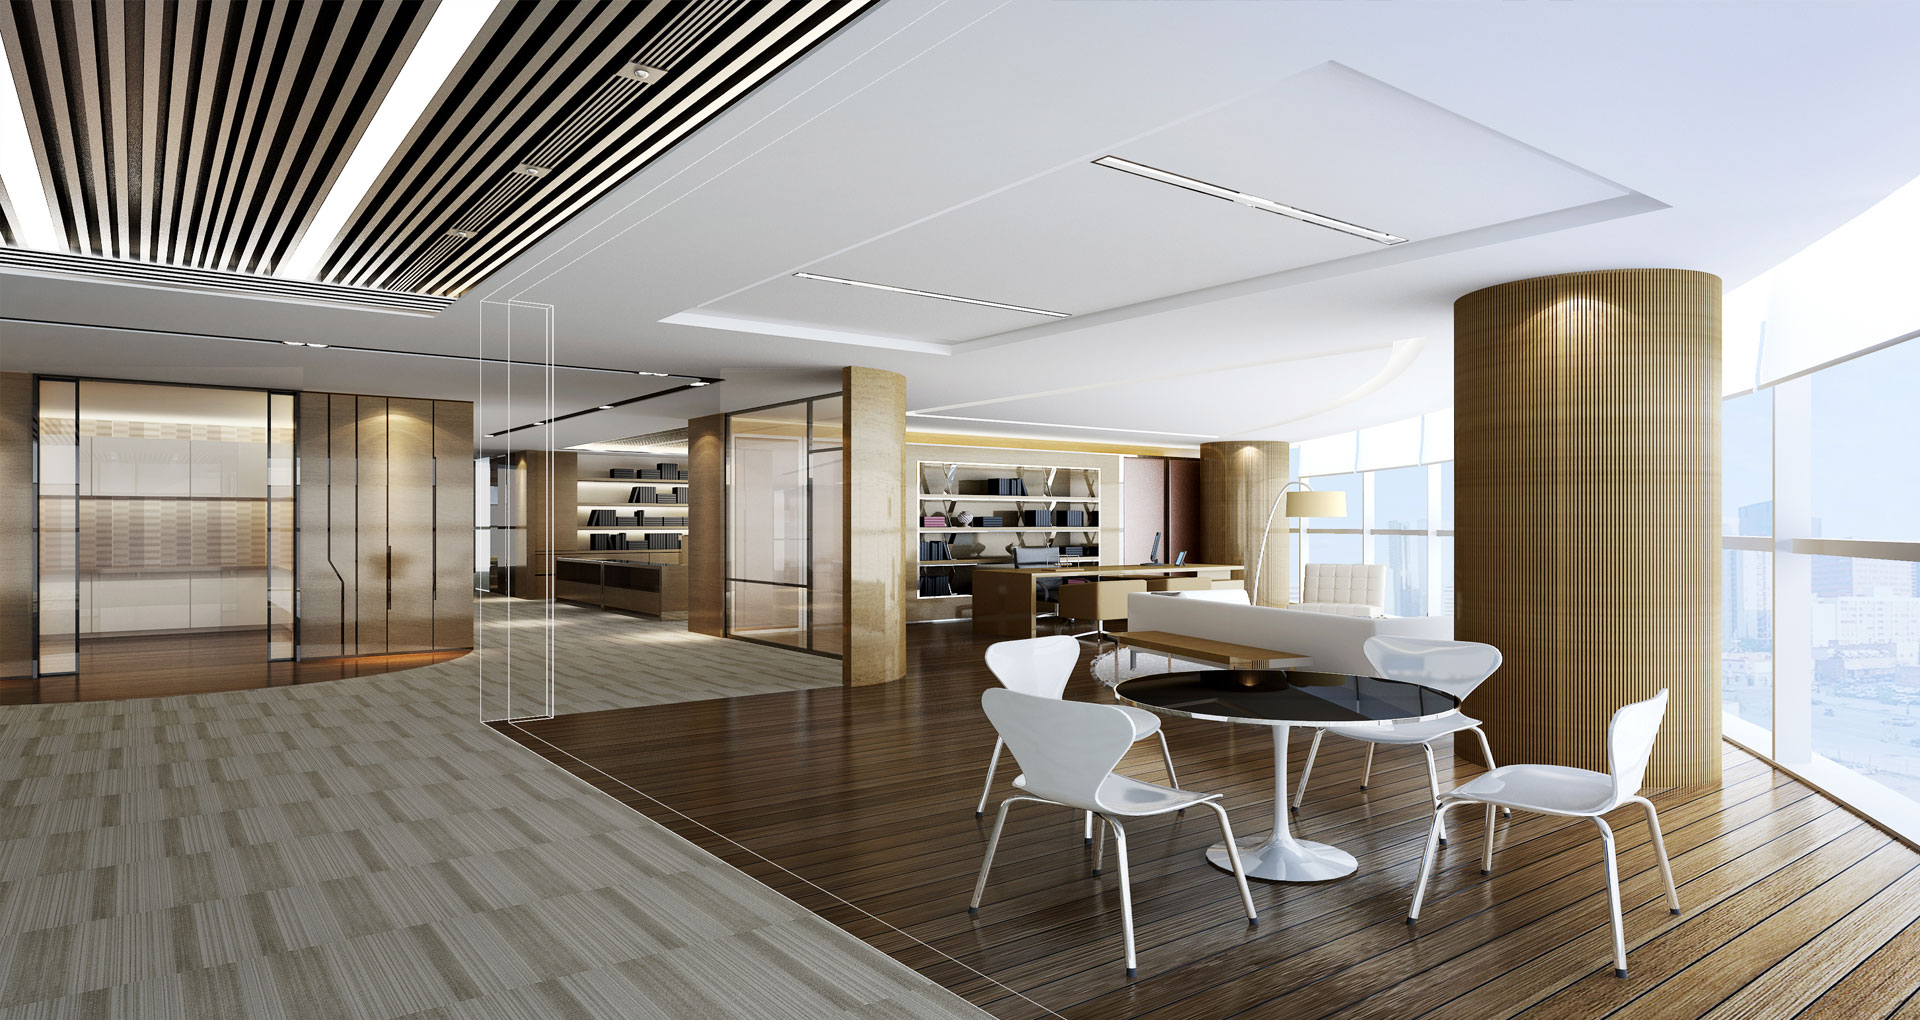 Office interior design inpro concepts design for Interior designs of offices